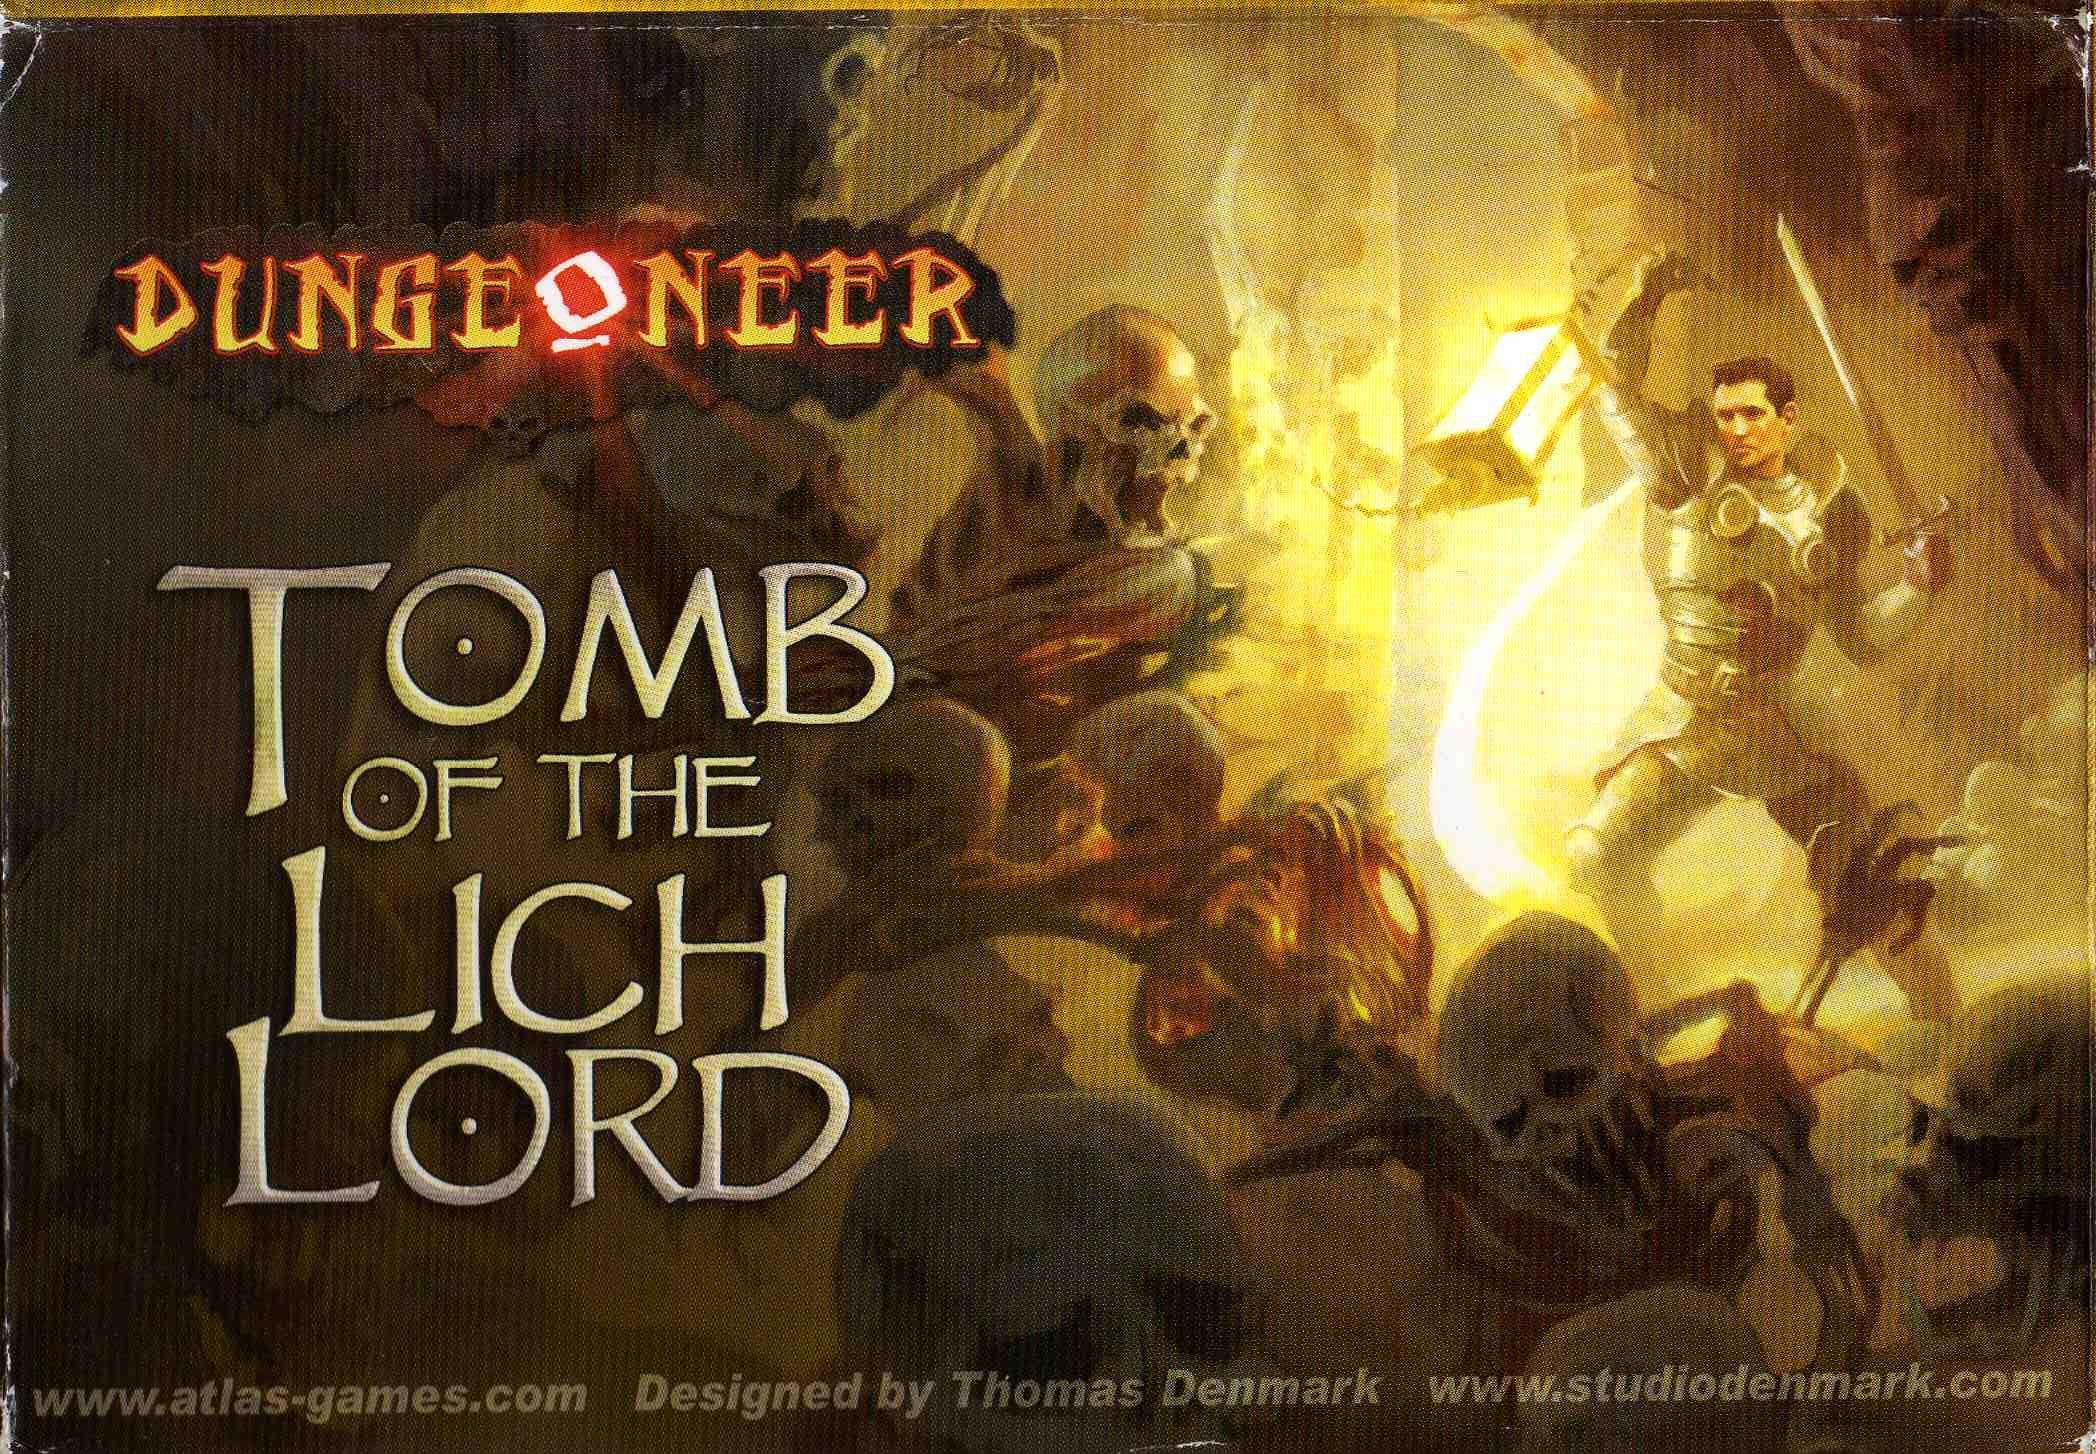 Dungeoneer: Tomb of the Lich Lord